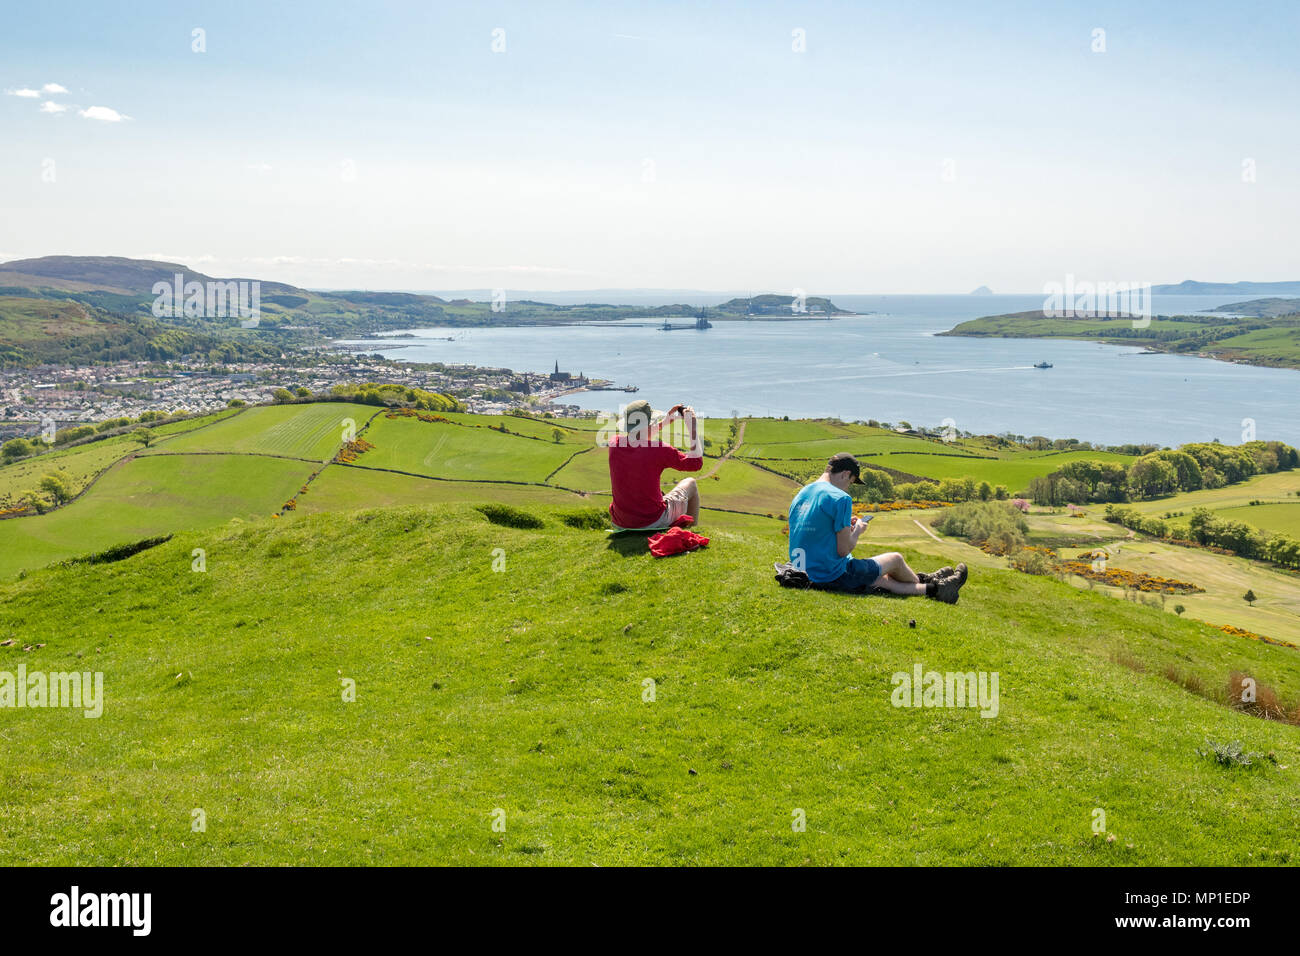 view of Largs and the Firth of Clyde in spring from the top of Knock Hill, Largs, North Ayrshire, Scotland, UK - Stock Image